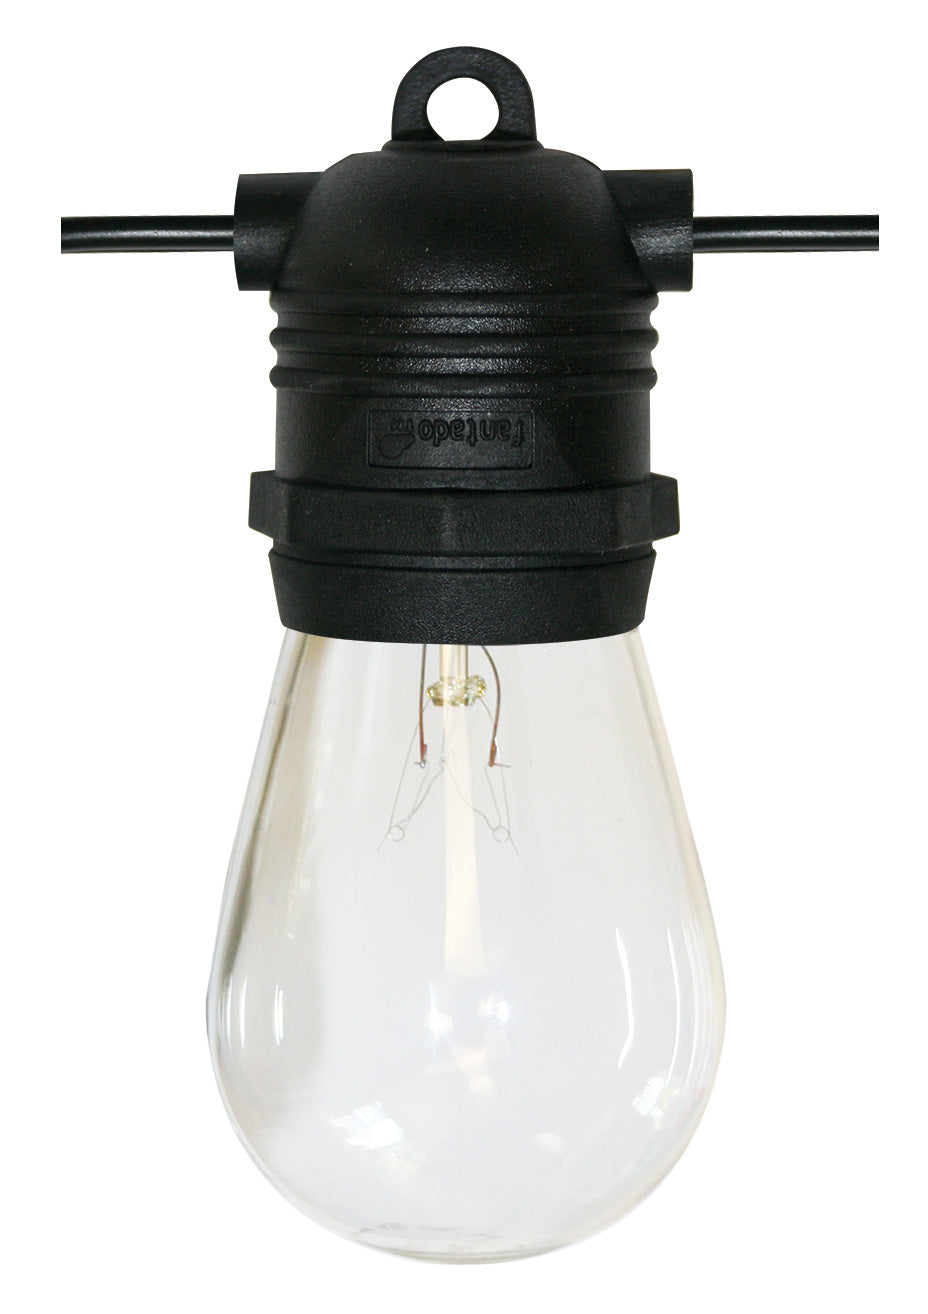 24 Socket Outdoor Commercial String Light Set, S14 Bulbs, 54 FT Black Cord w/ E26 Medium Base, Weatherproof